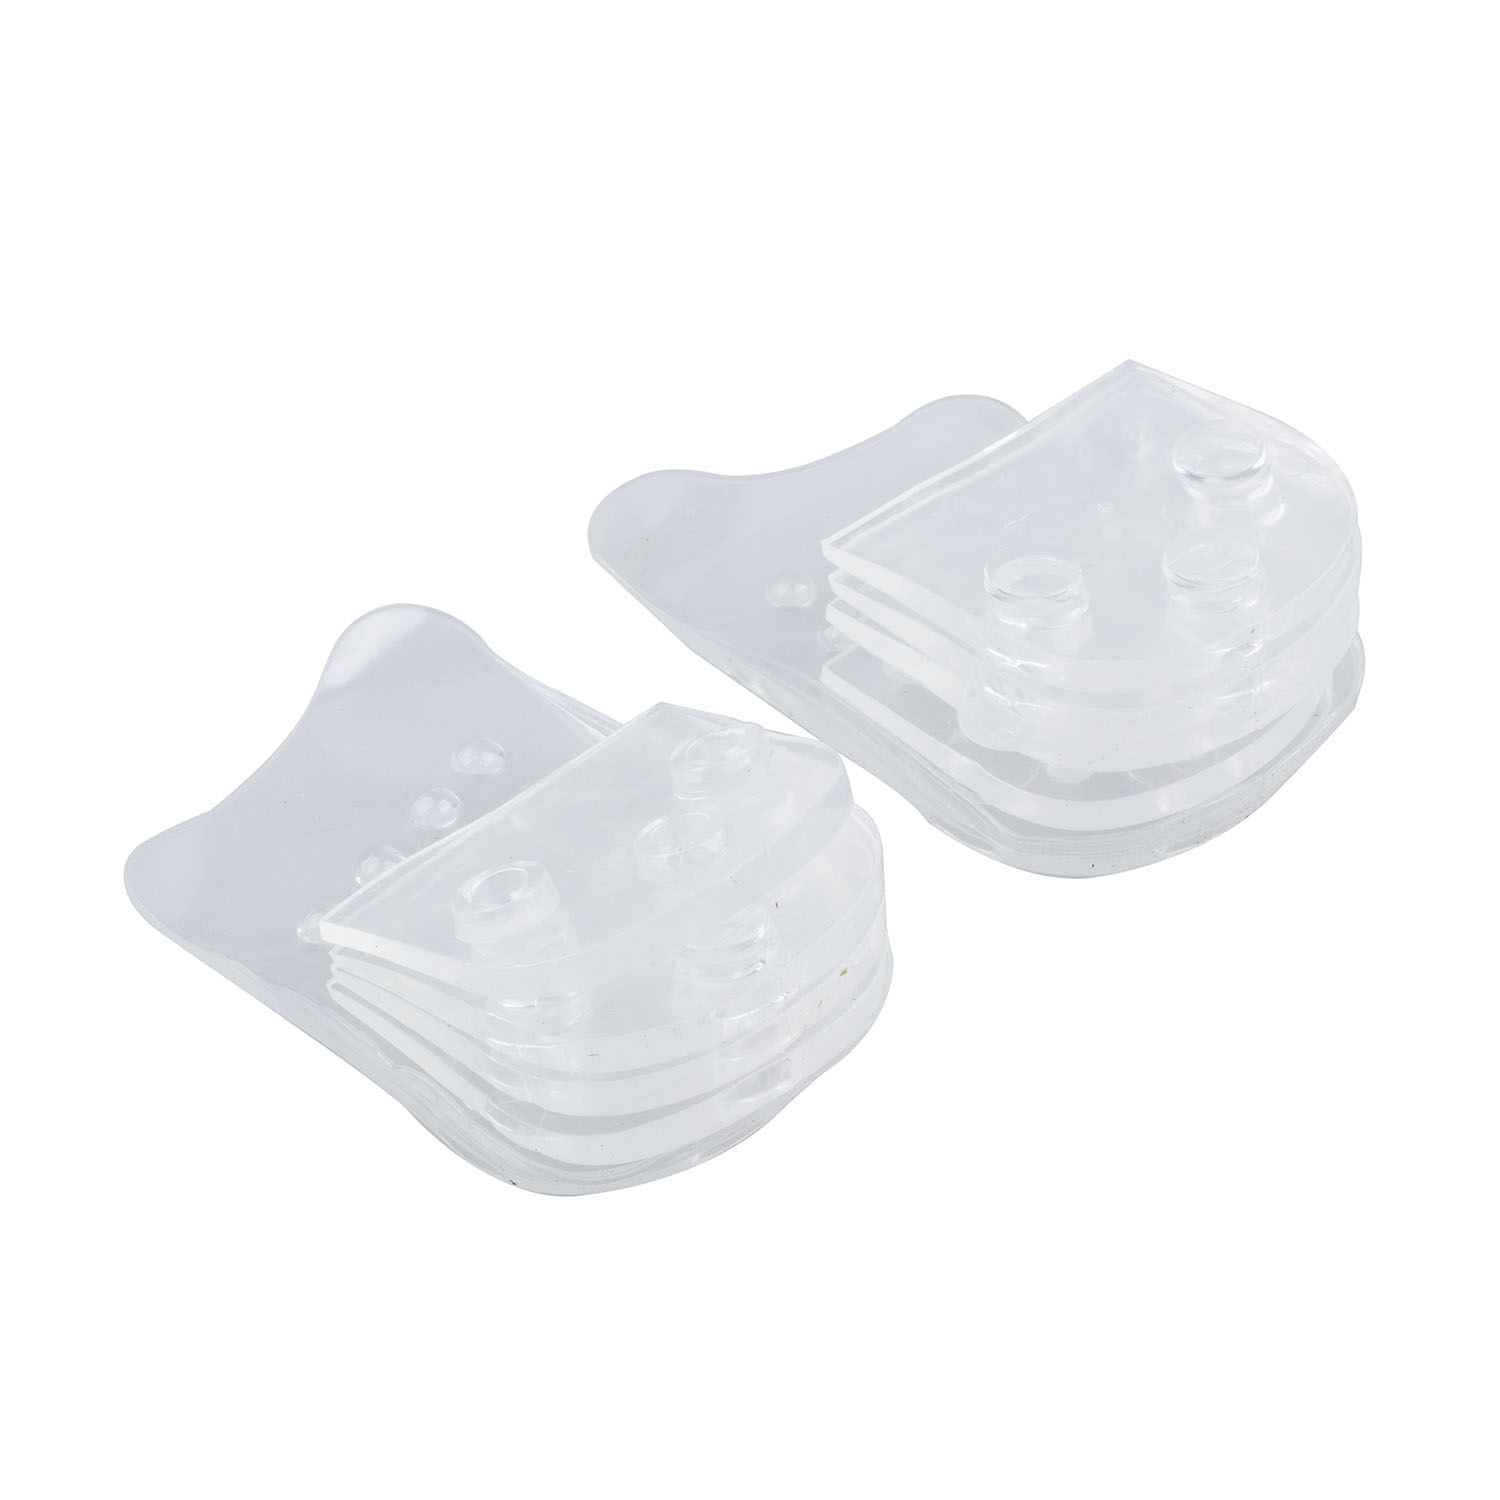 все цены на Fashion Boutique Heel Lift SHOE INSERTS - 1 PAIR - Height Increase Insoles Silicone онлайн